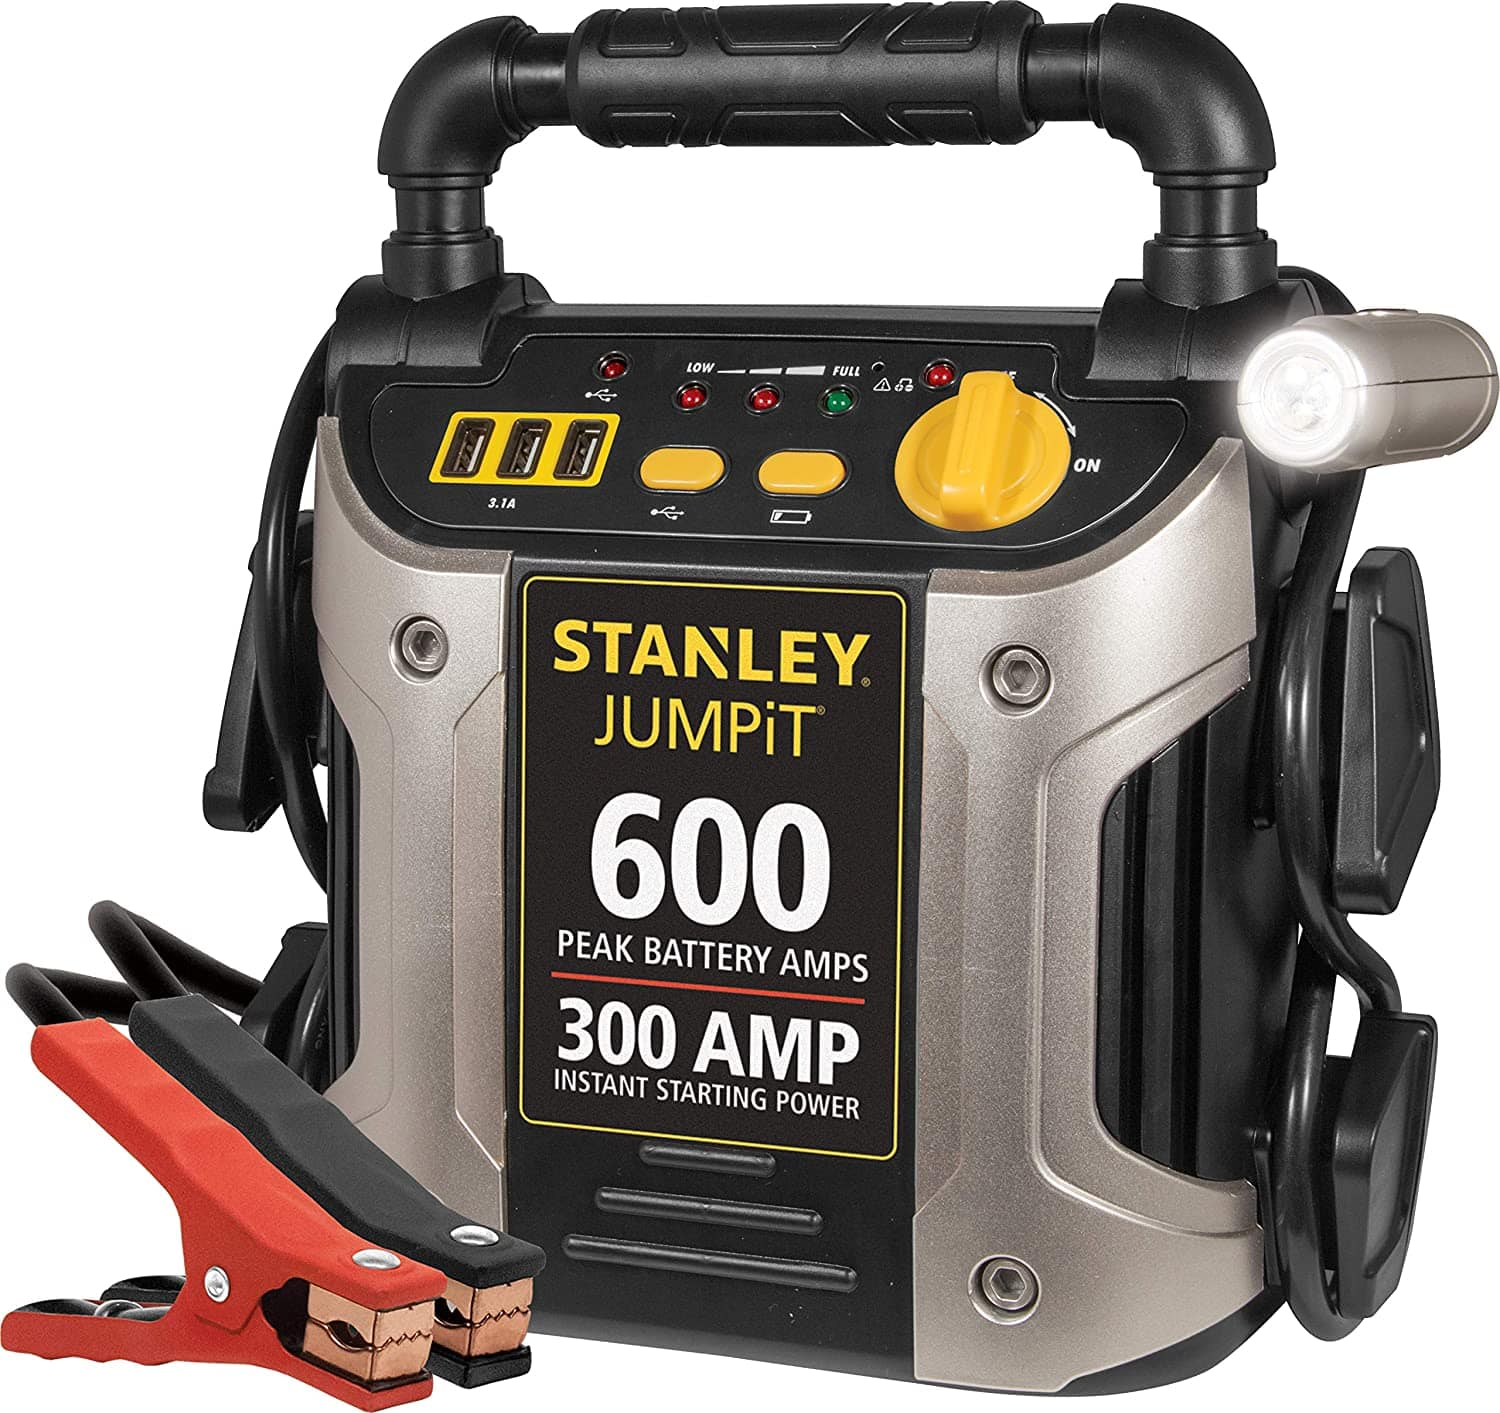 STANLEY J309 Power Station Jump Starter: 600 Peak/300 Instant Amps with Battery Clamps $39